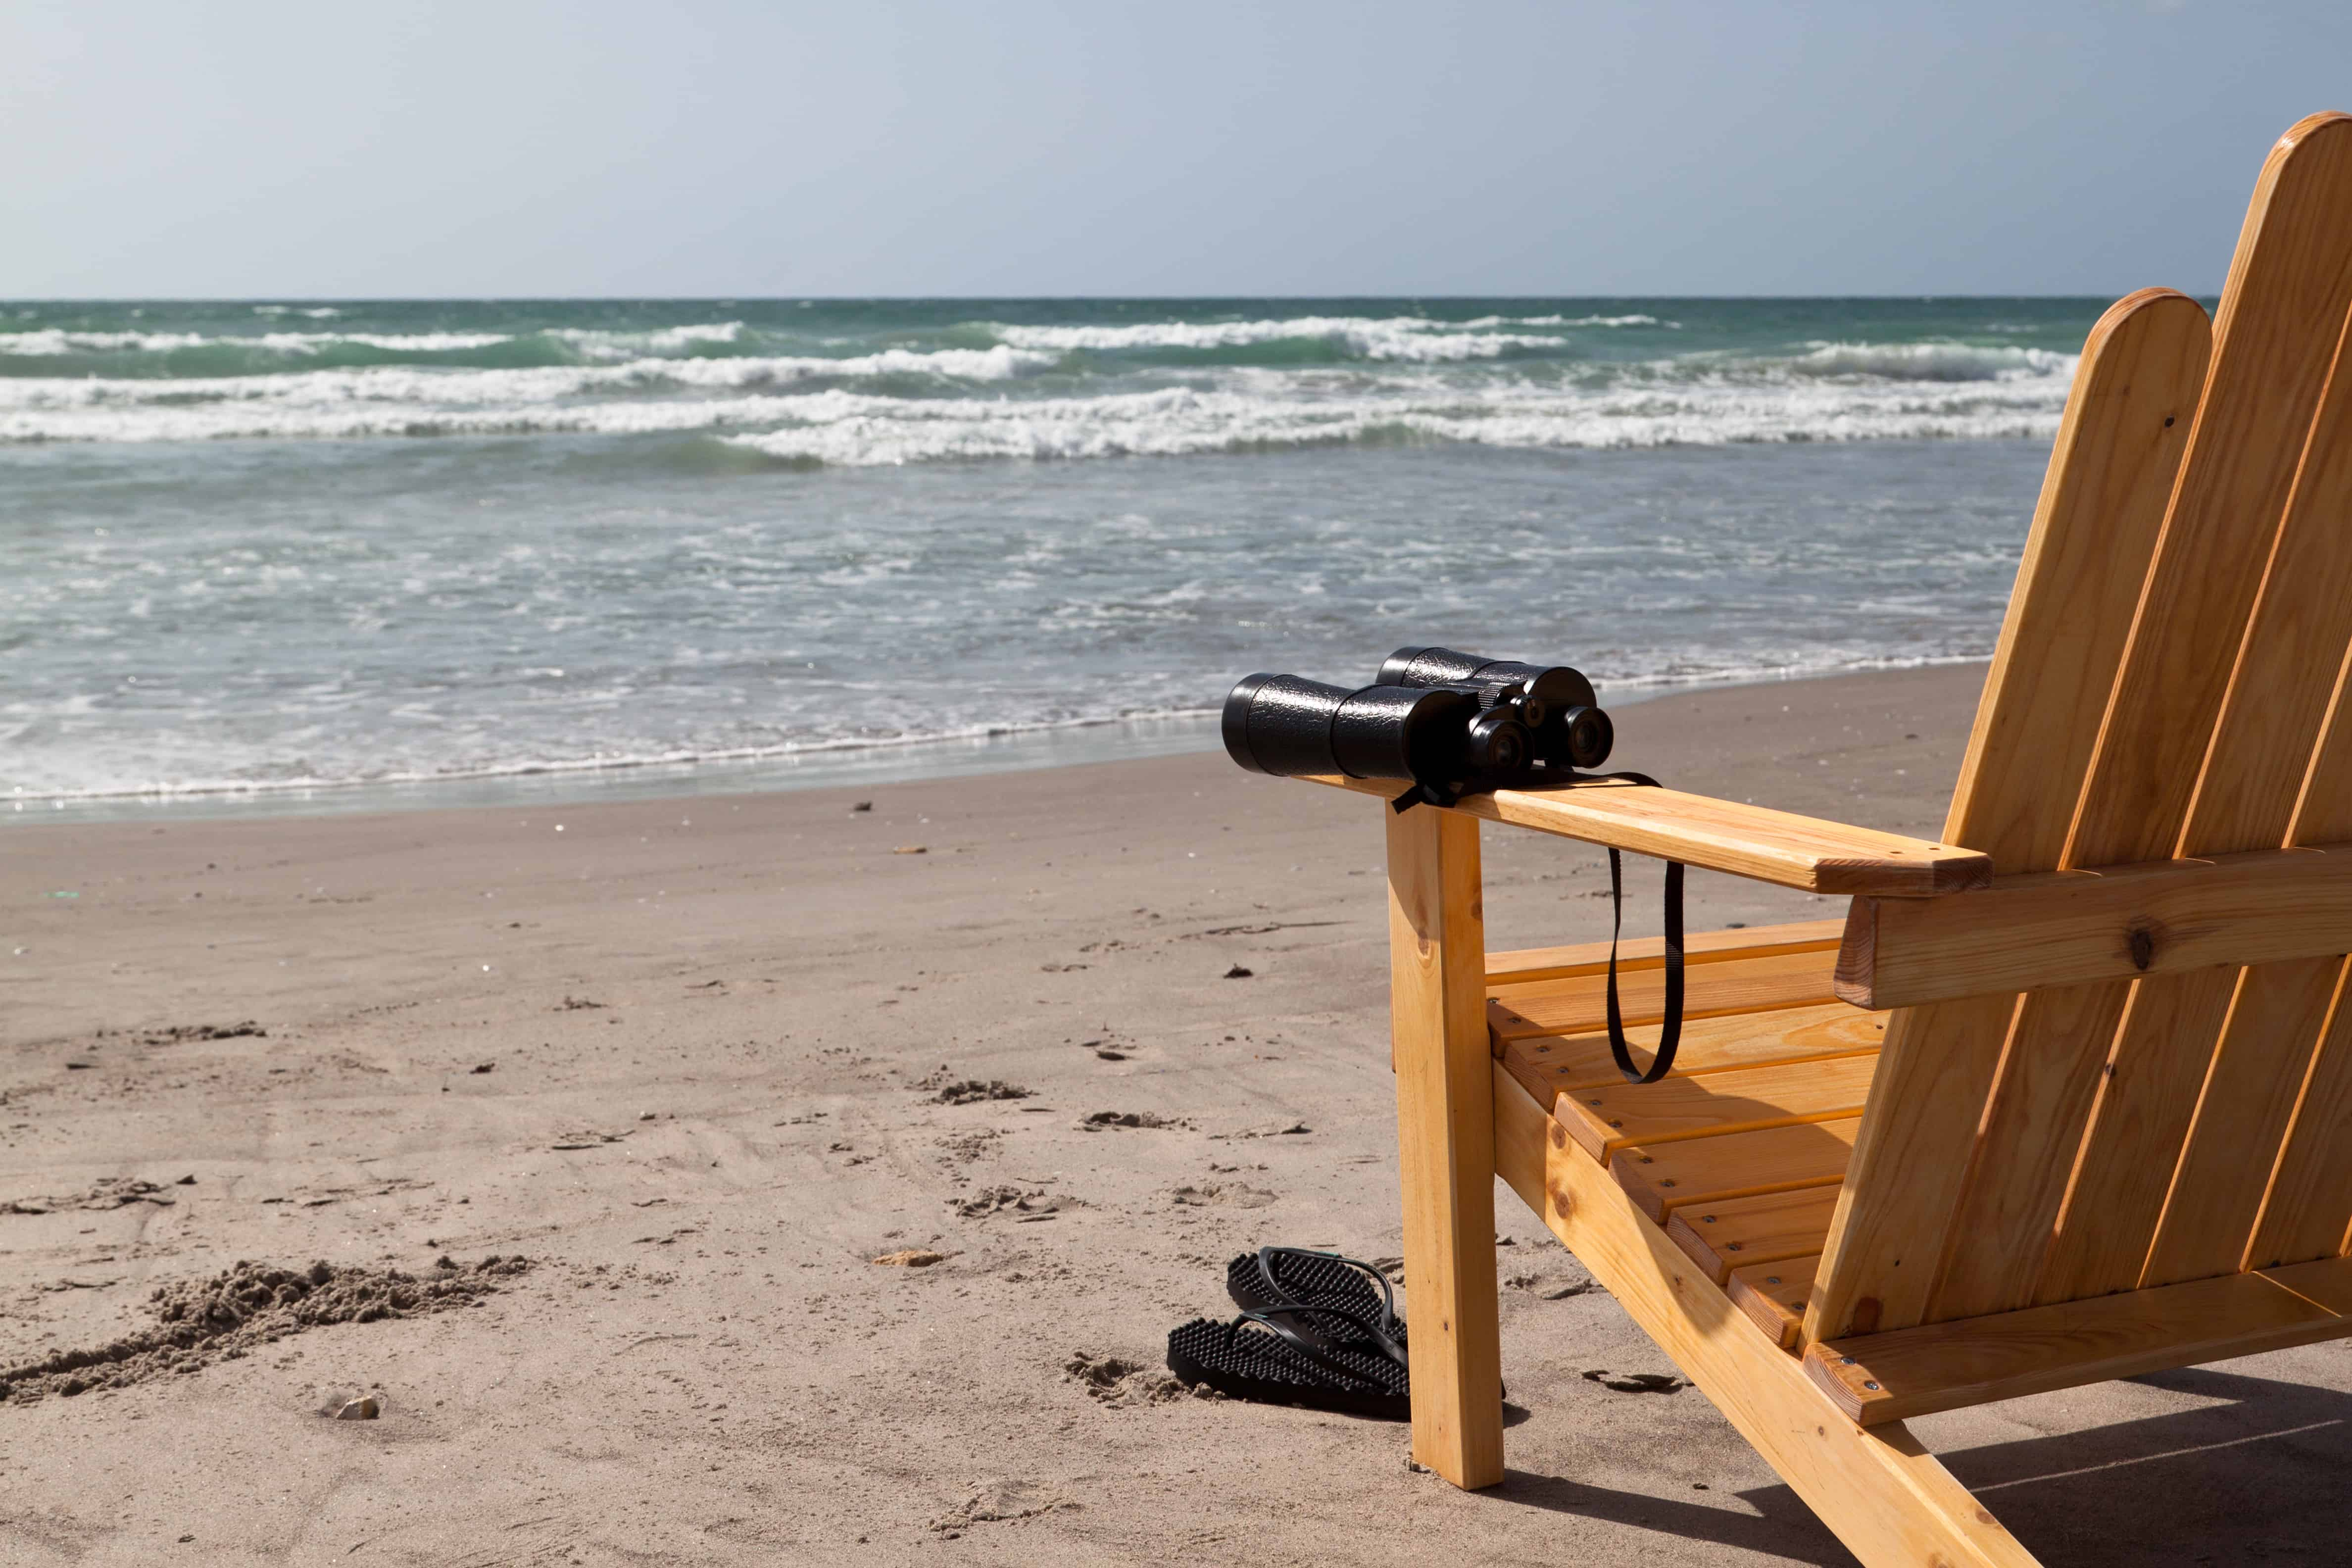 Environment watching with binoculars on the beach